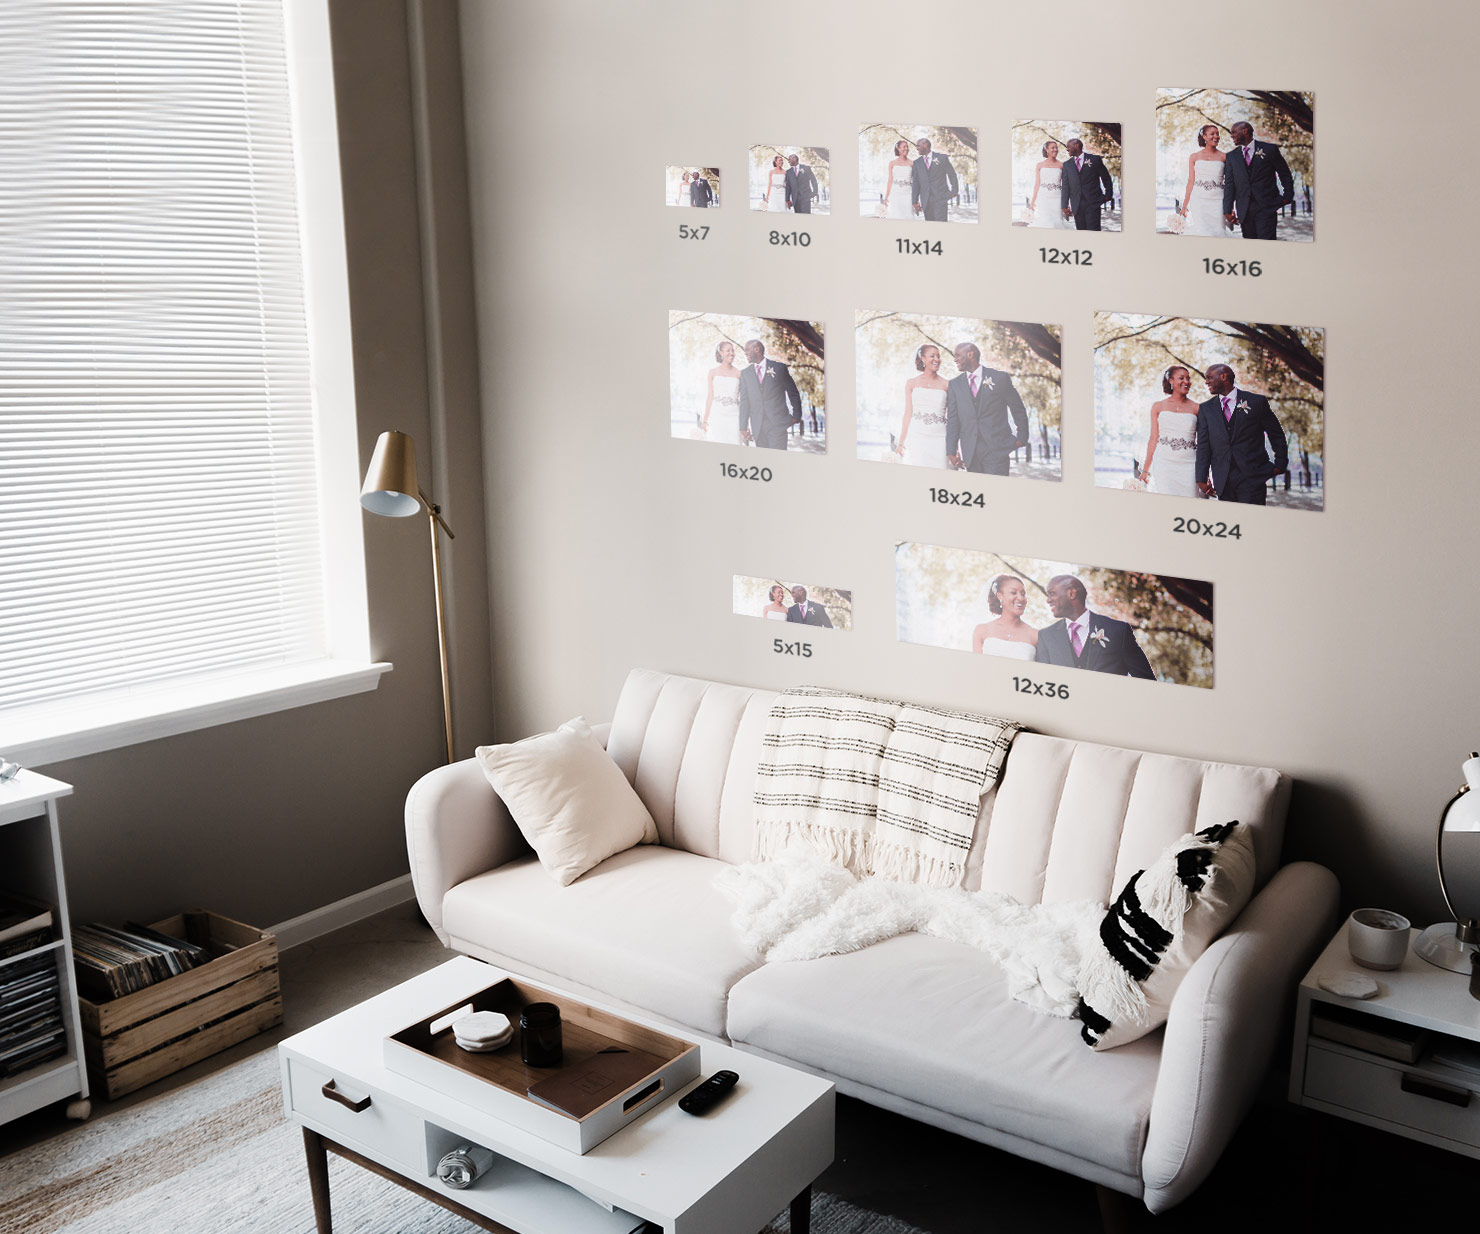 High Different Sized Photos What Are Standard Photo Print Shutterfly Standard Photo Print Sizes Walmart Standard Photo Print Sizes Cm Wall Gallery Above A Couch photos Standard Photo Print Sizes